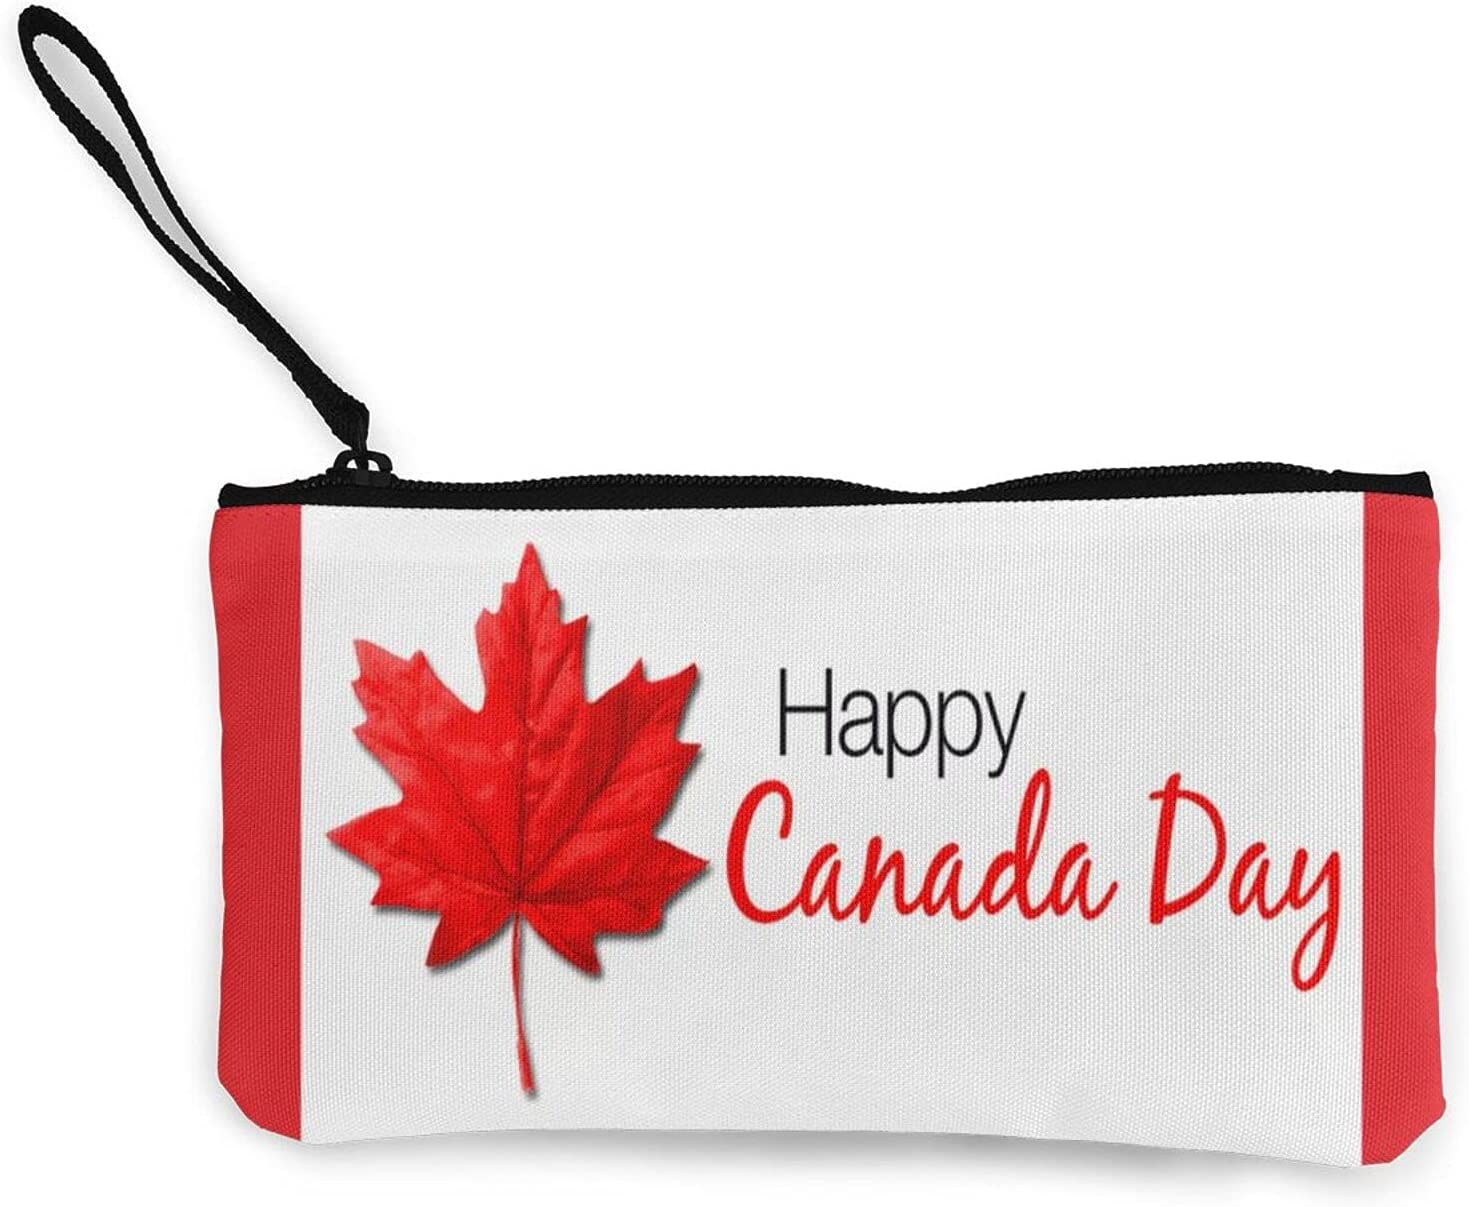 Happy Canada Day Multifunction Travel Toiletry Pouch Small Canvas Coin Wallet Bag Zipper